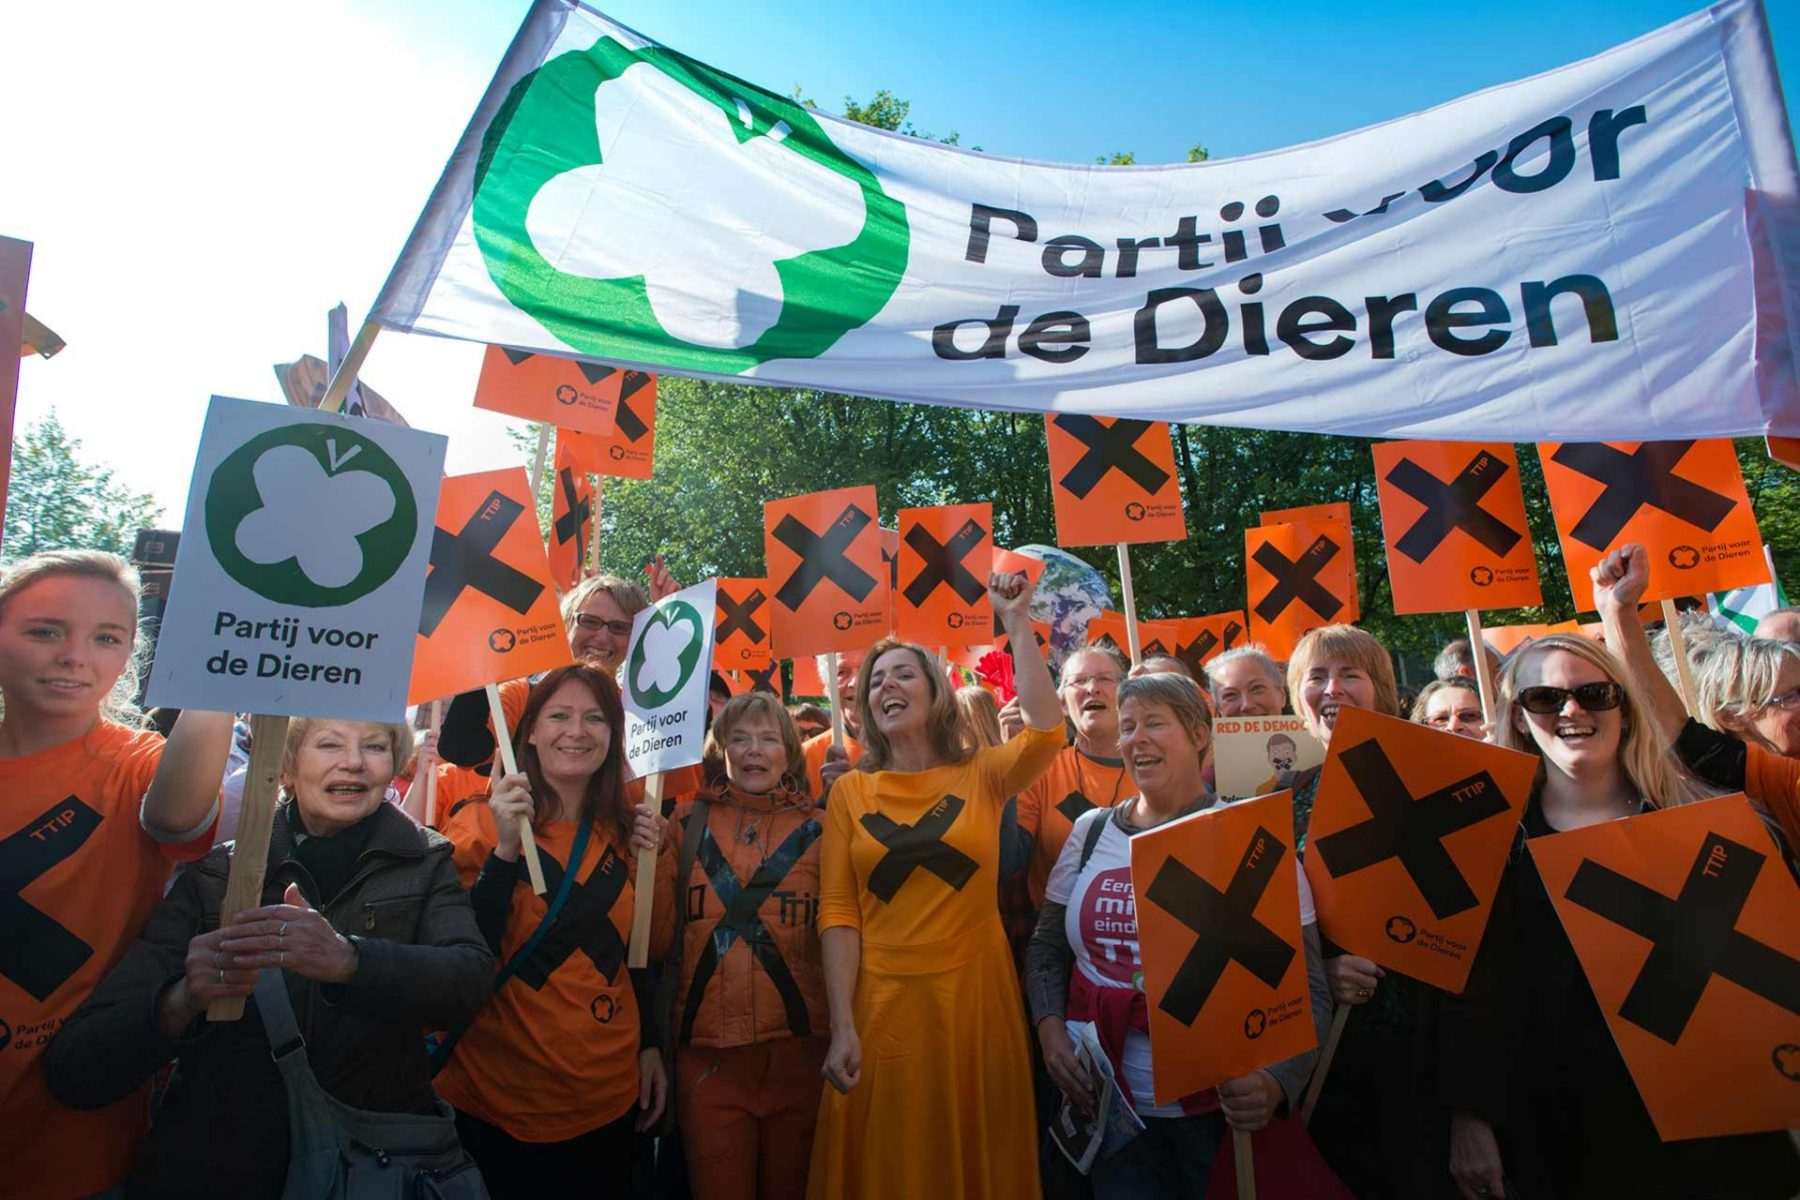 Animal advocate Marianne Thieme, founder of the political party, Parti voor de Dieren (Party for the Animals), at rally in Amsterdam. Netherlands, 2015